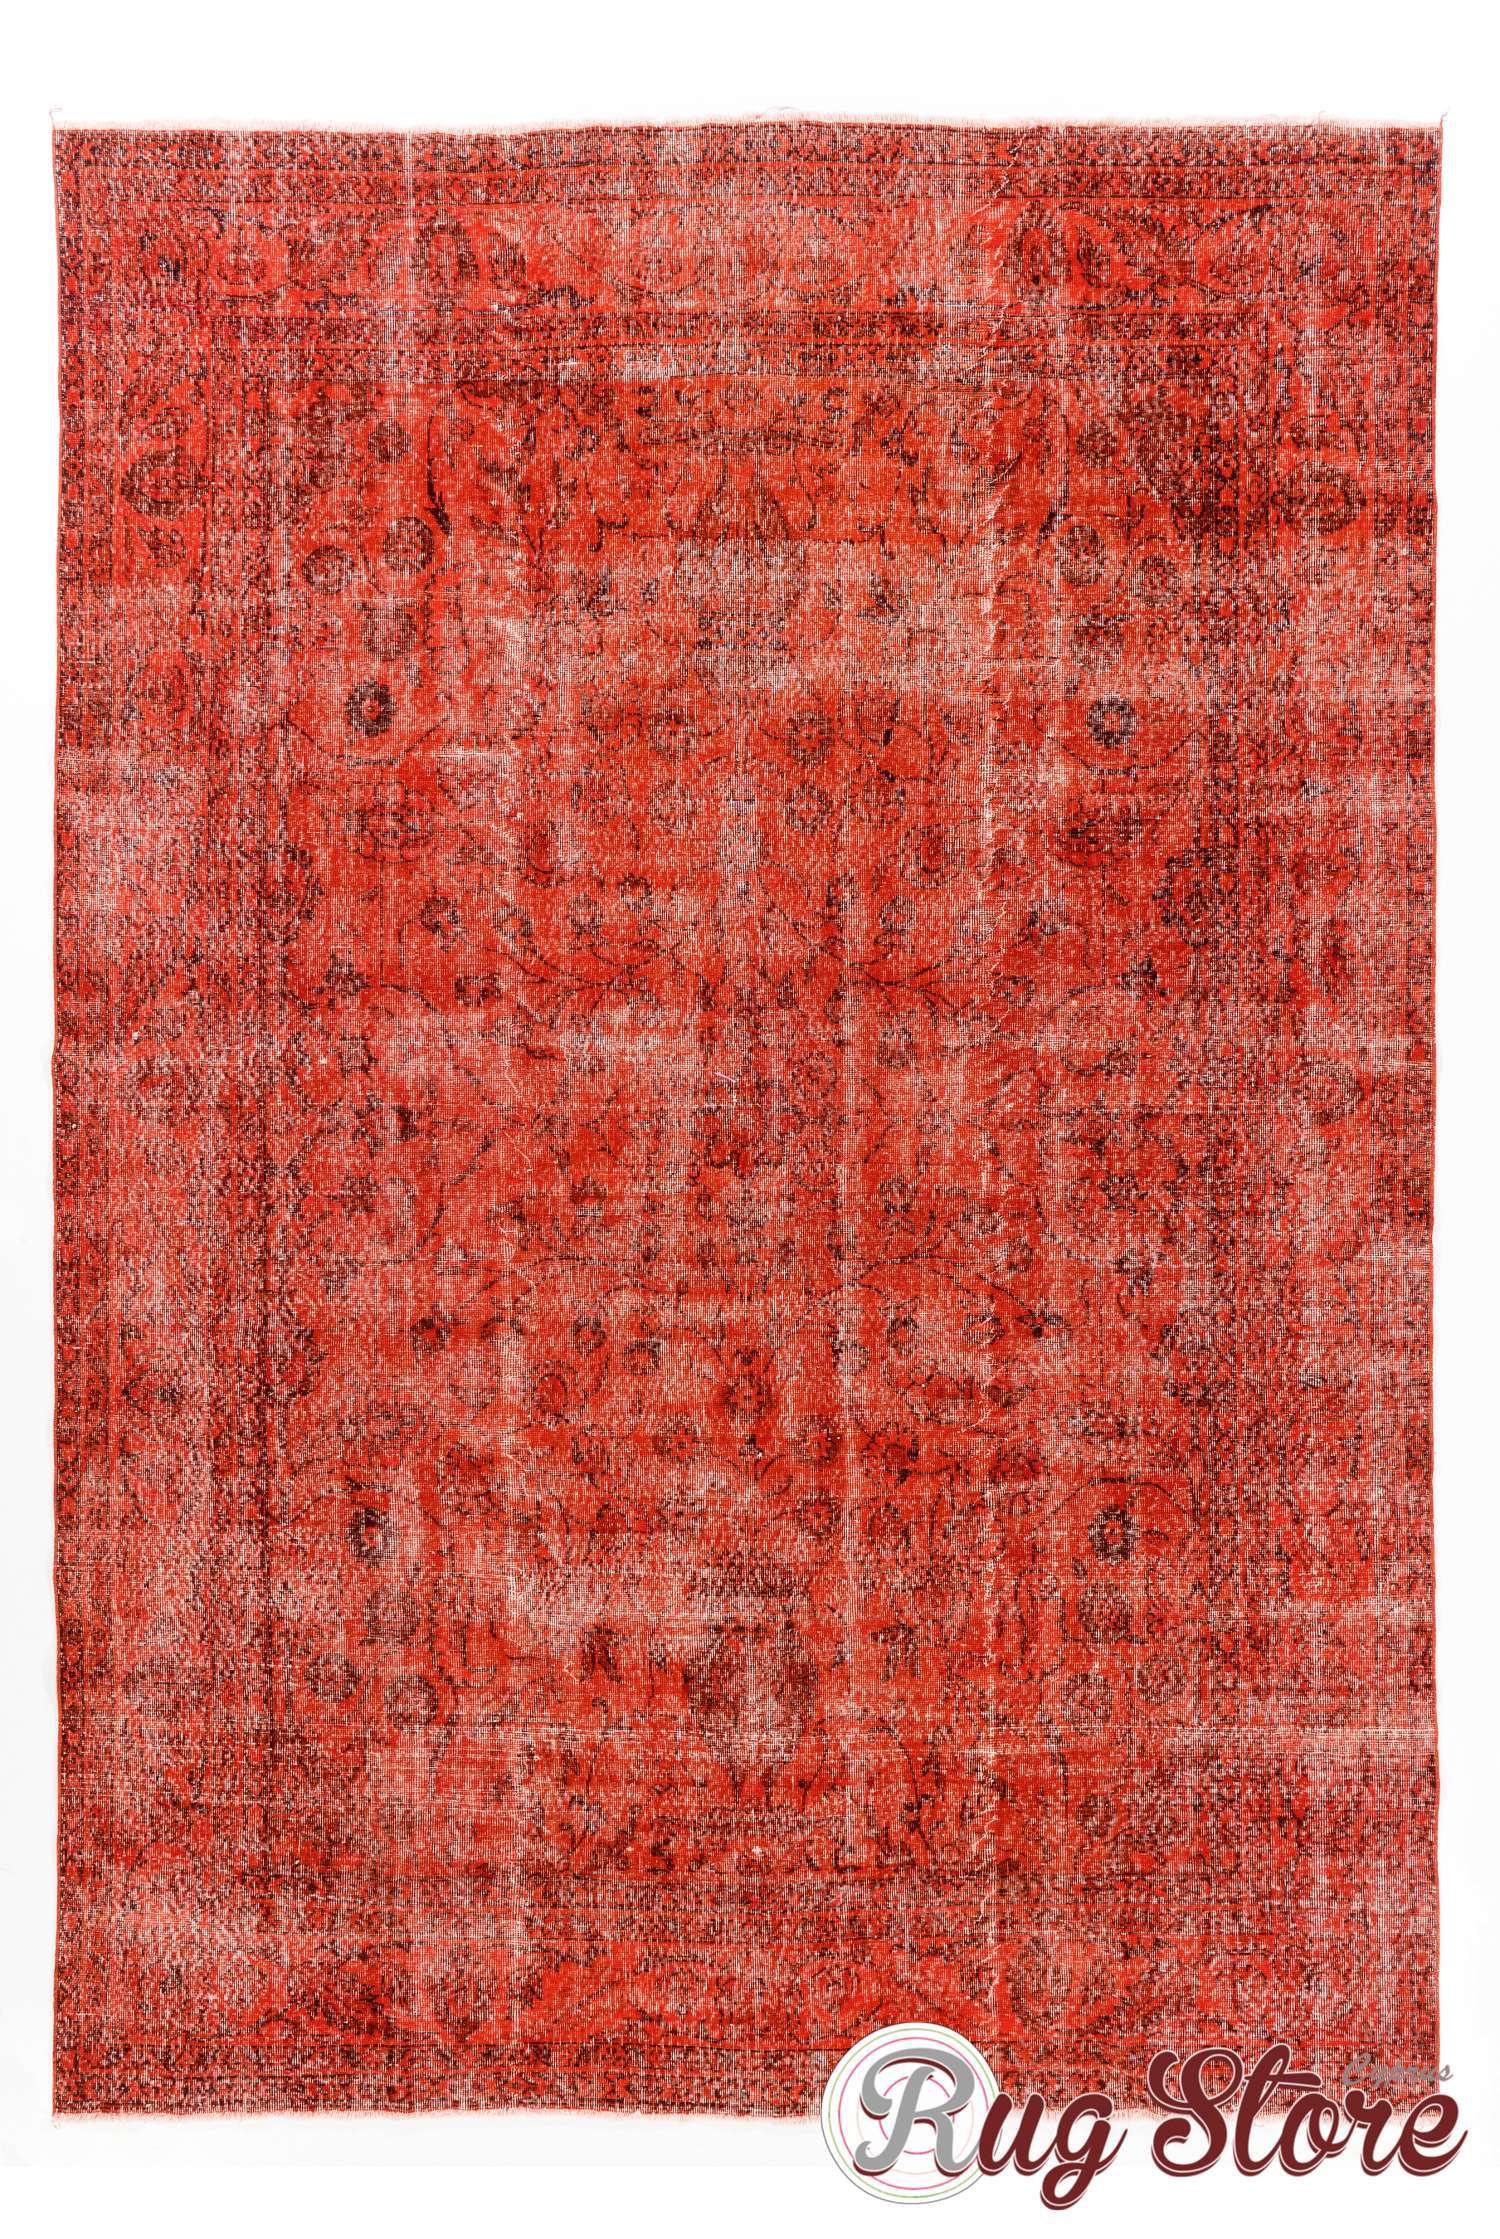 7 8 X 11 240 340 Cm Red Color Vintage Overdyed Handmade Turkish Rug